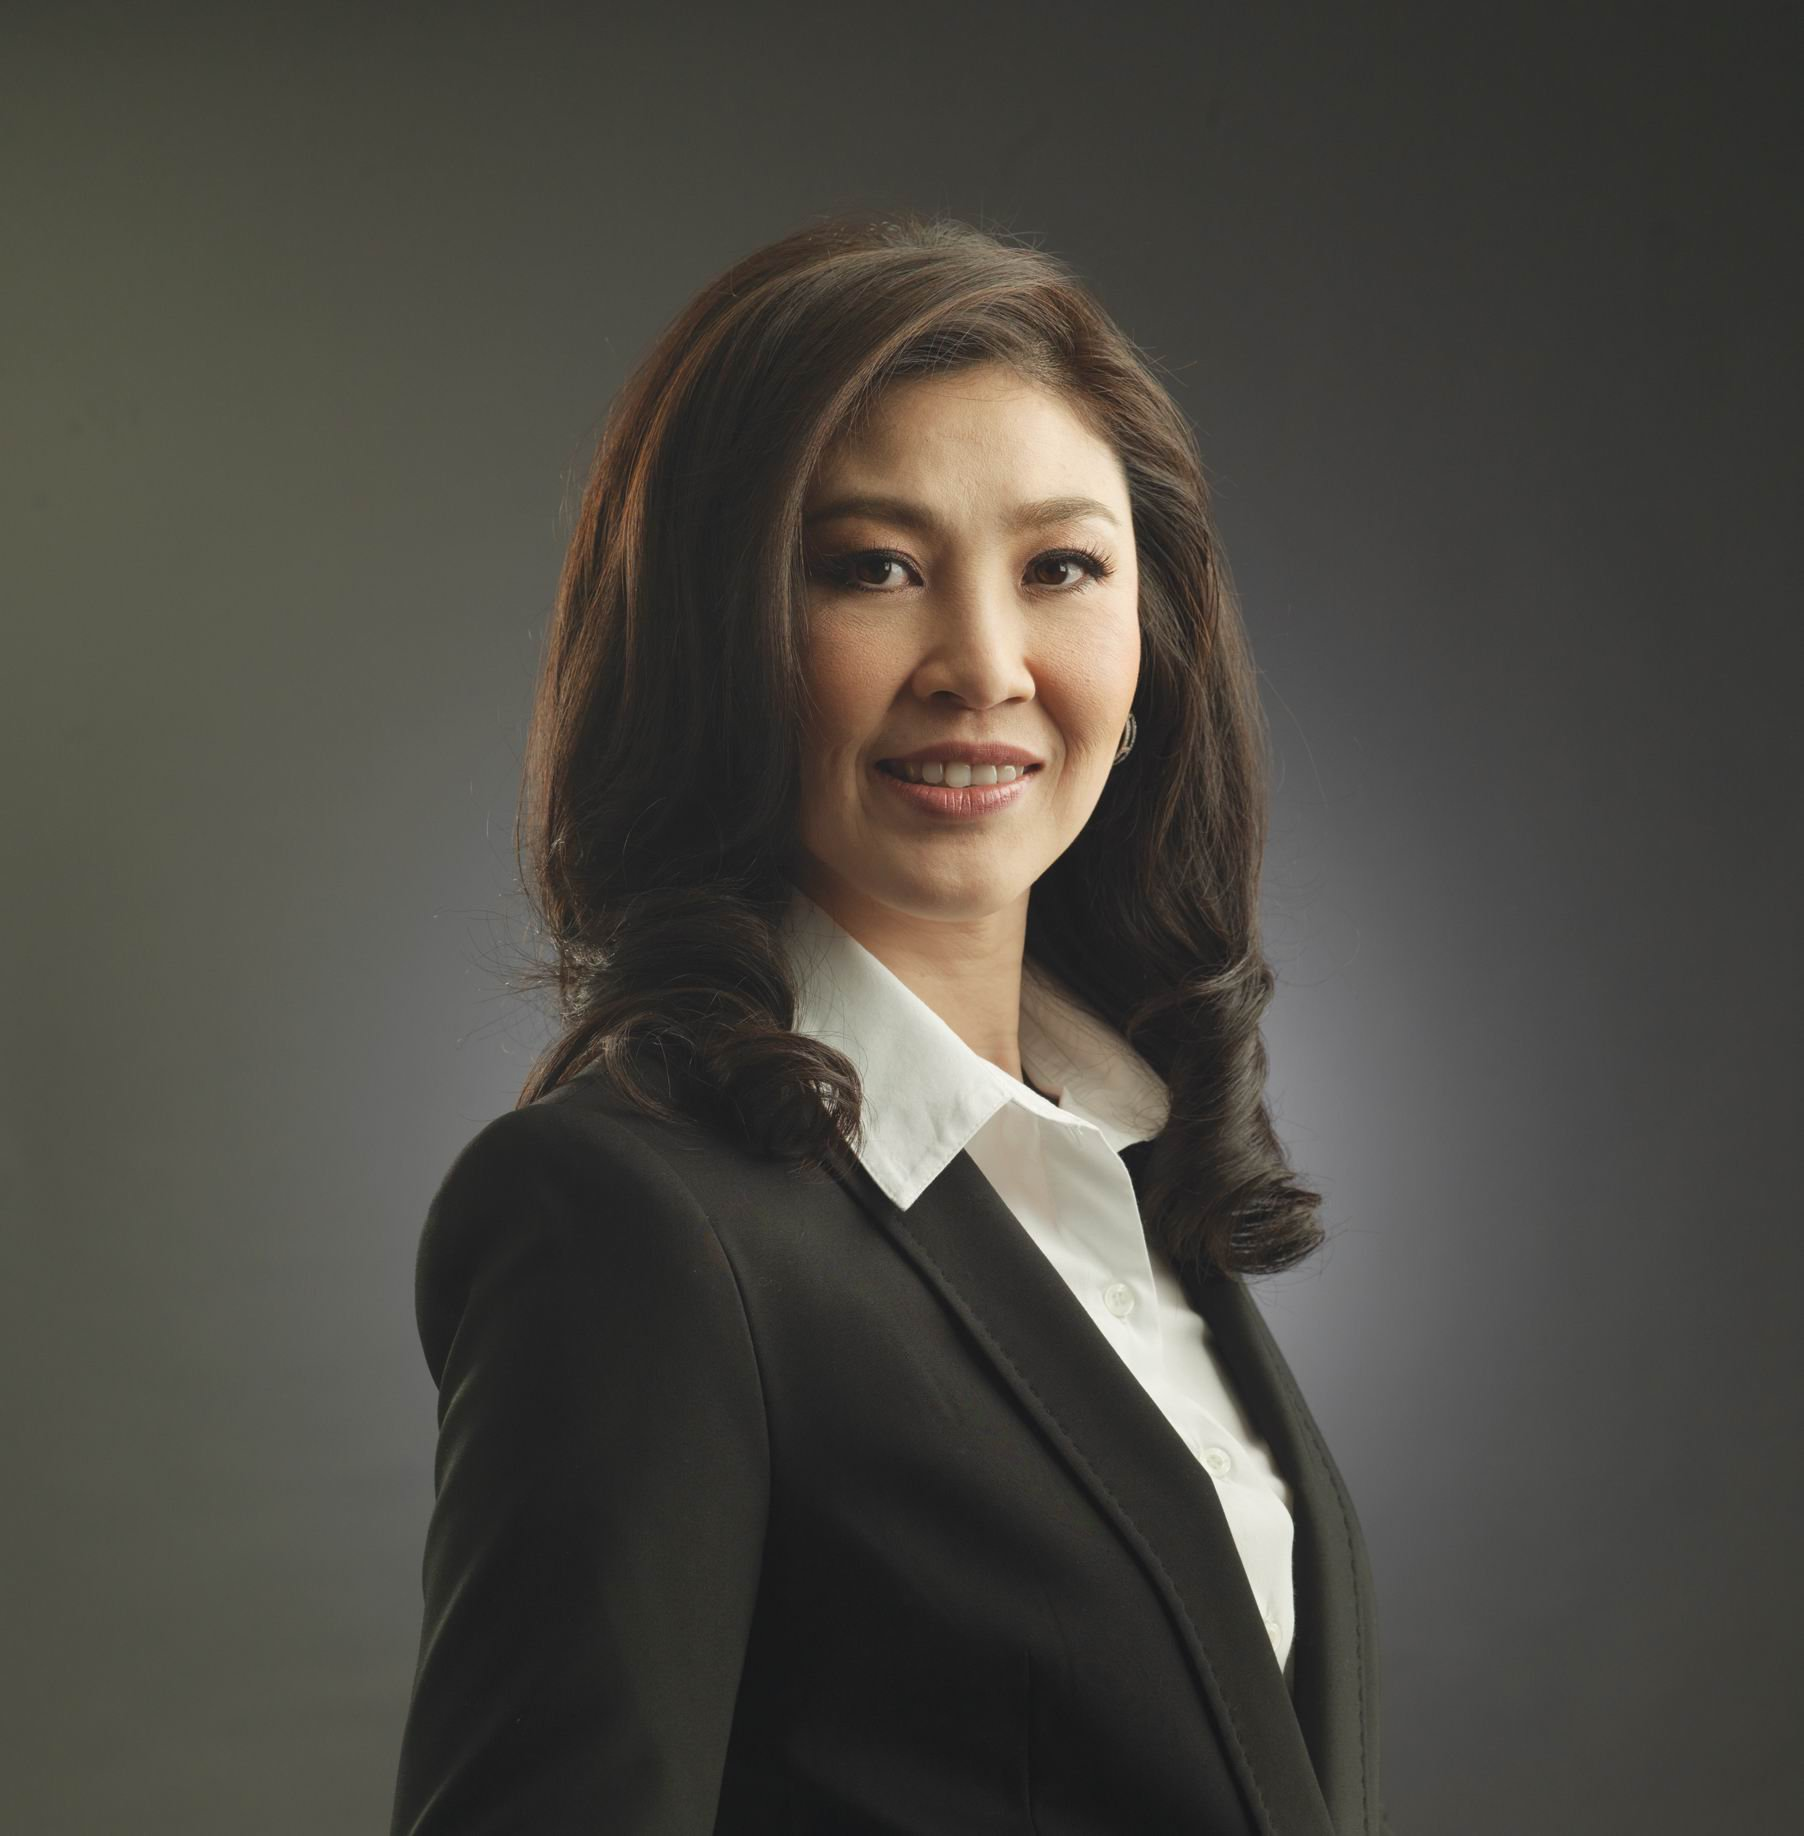 Yingluck Shinawatra invites Thais to join on Dec 5 as HM the King makes public appearance